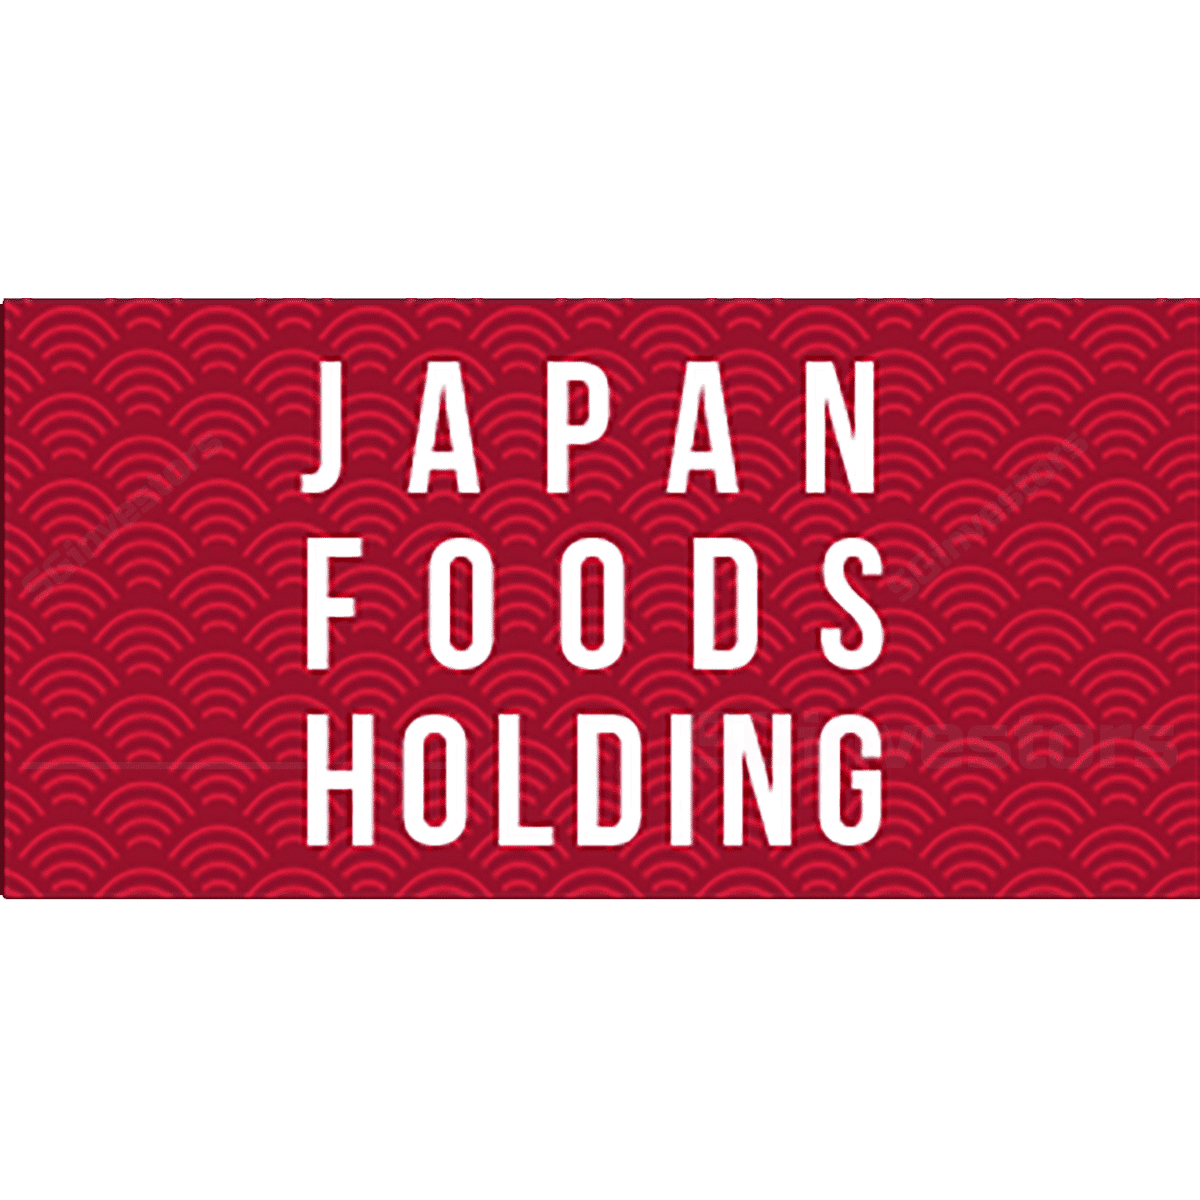 Japan Foods Holding - RHB Invest 2018-05-04: Enterprising Japanese Restaurant Chain